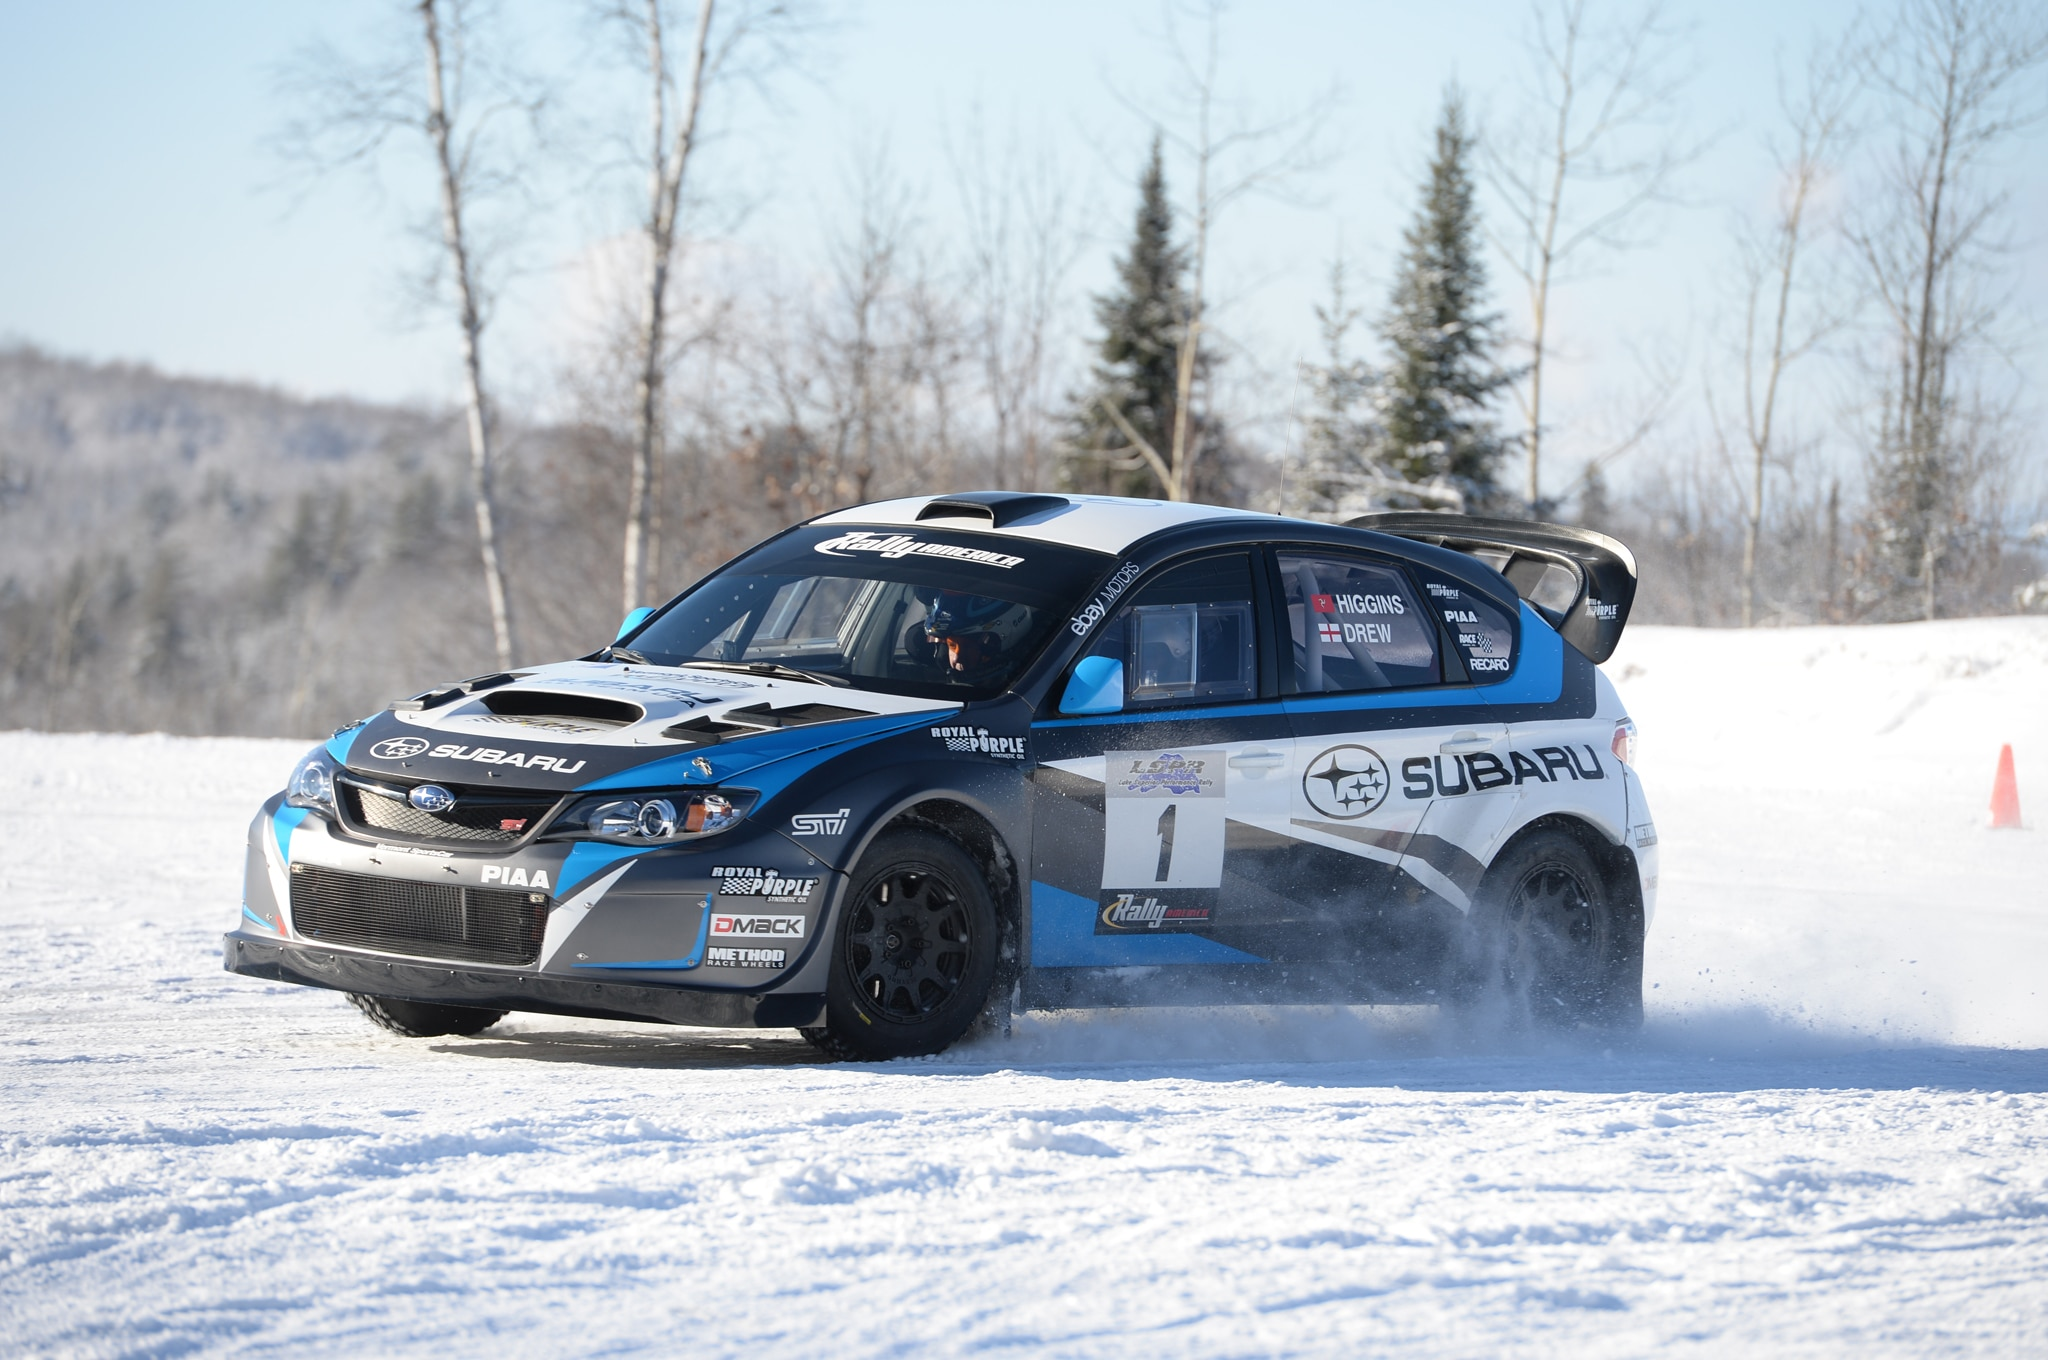 Learning to Drive a Subaru WRX STI Rally Car in the Snow